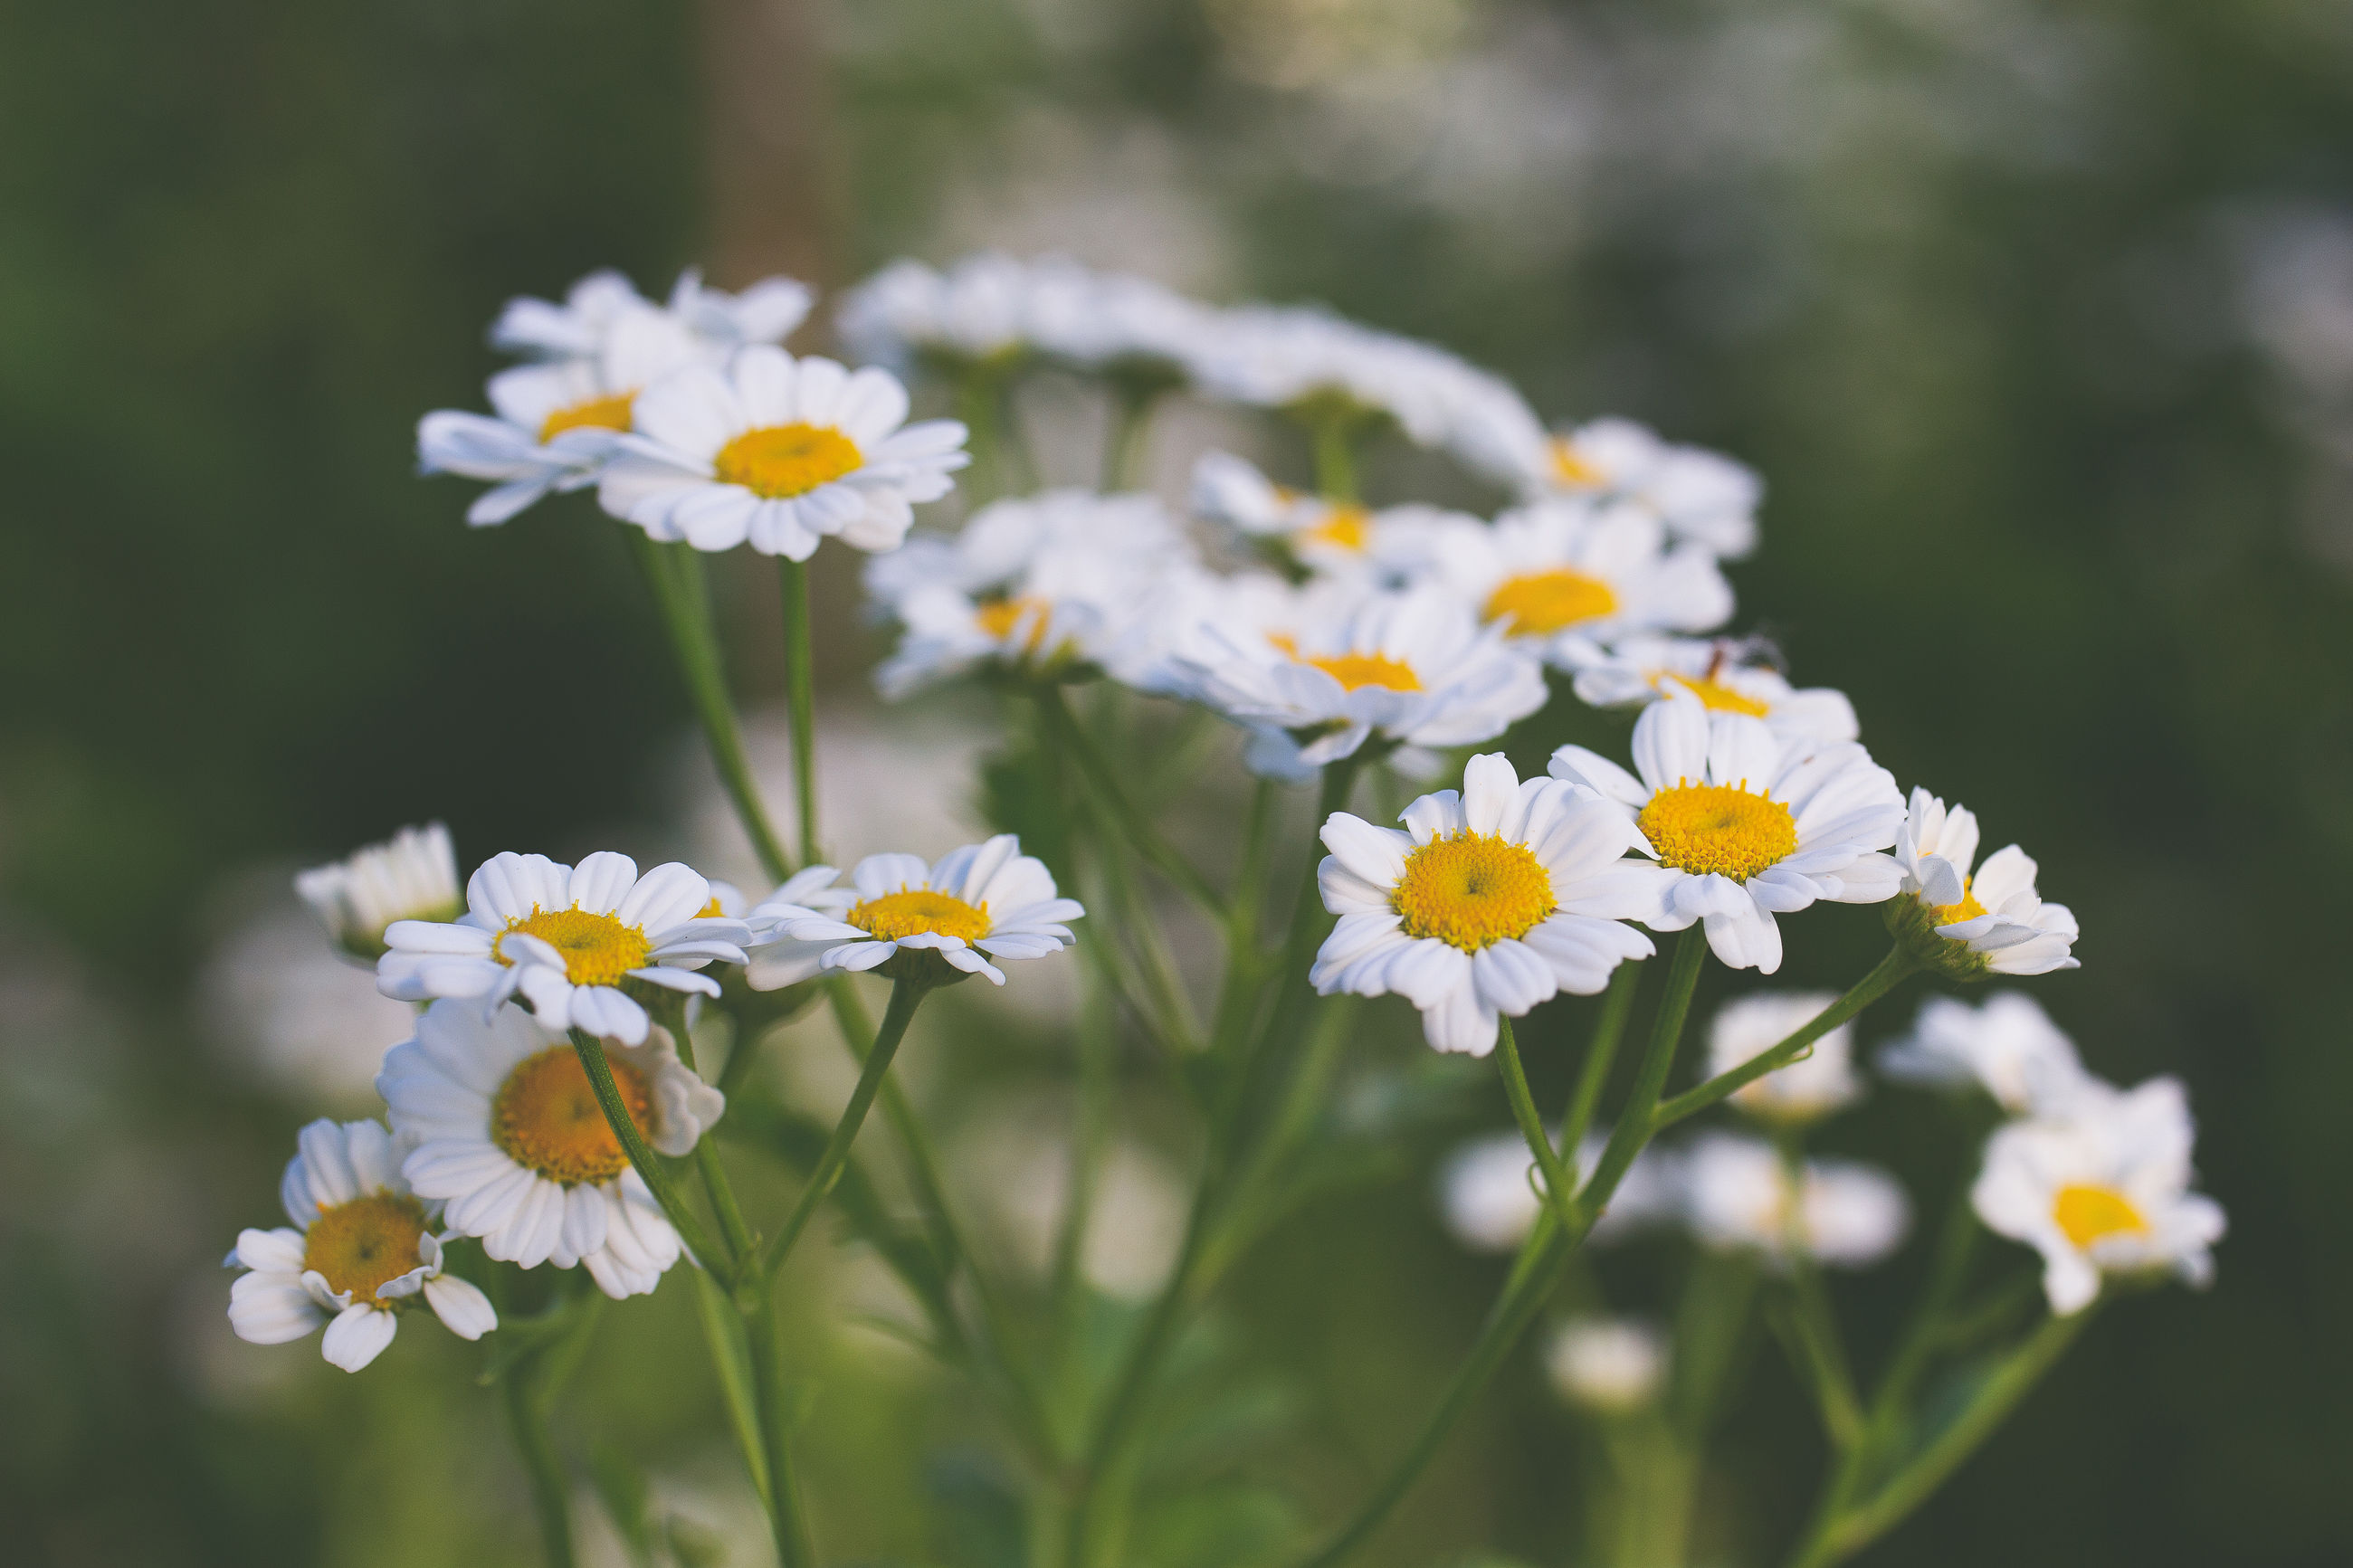 flower, flowering plant, plant, freshness, beauty in nature, nature, close-up, fragility, yellow, white, flower head, daisy, meadow, focus on foreground, grass, no people, summer, growth, botany, outdoors, tanacetum parthenium, wildflower, petal, springtime, plain, multi colored, selective focus, inflorescence, day, blossom, environment, sunlight, medicine, animal wildlife, macro photography, landscape, field, healthcare and medicine